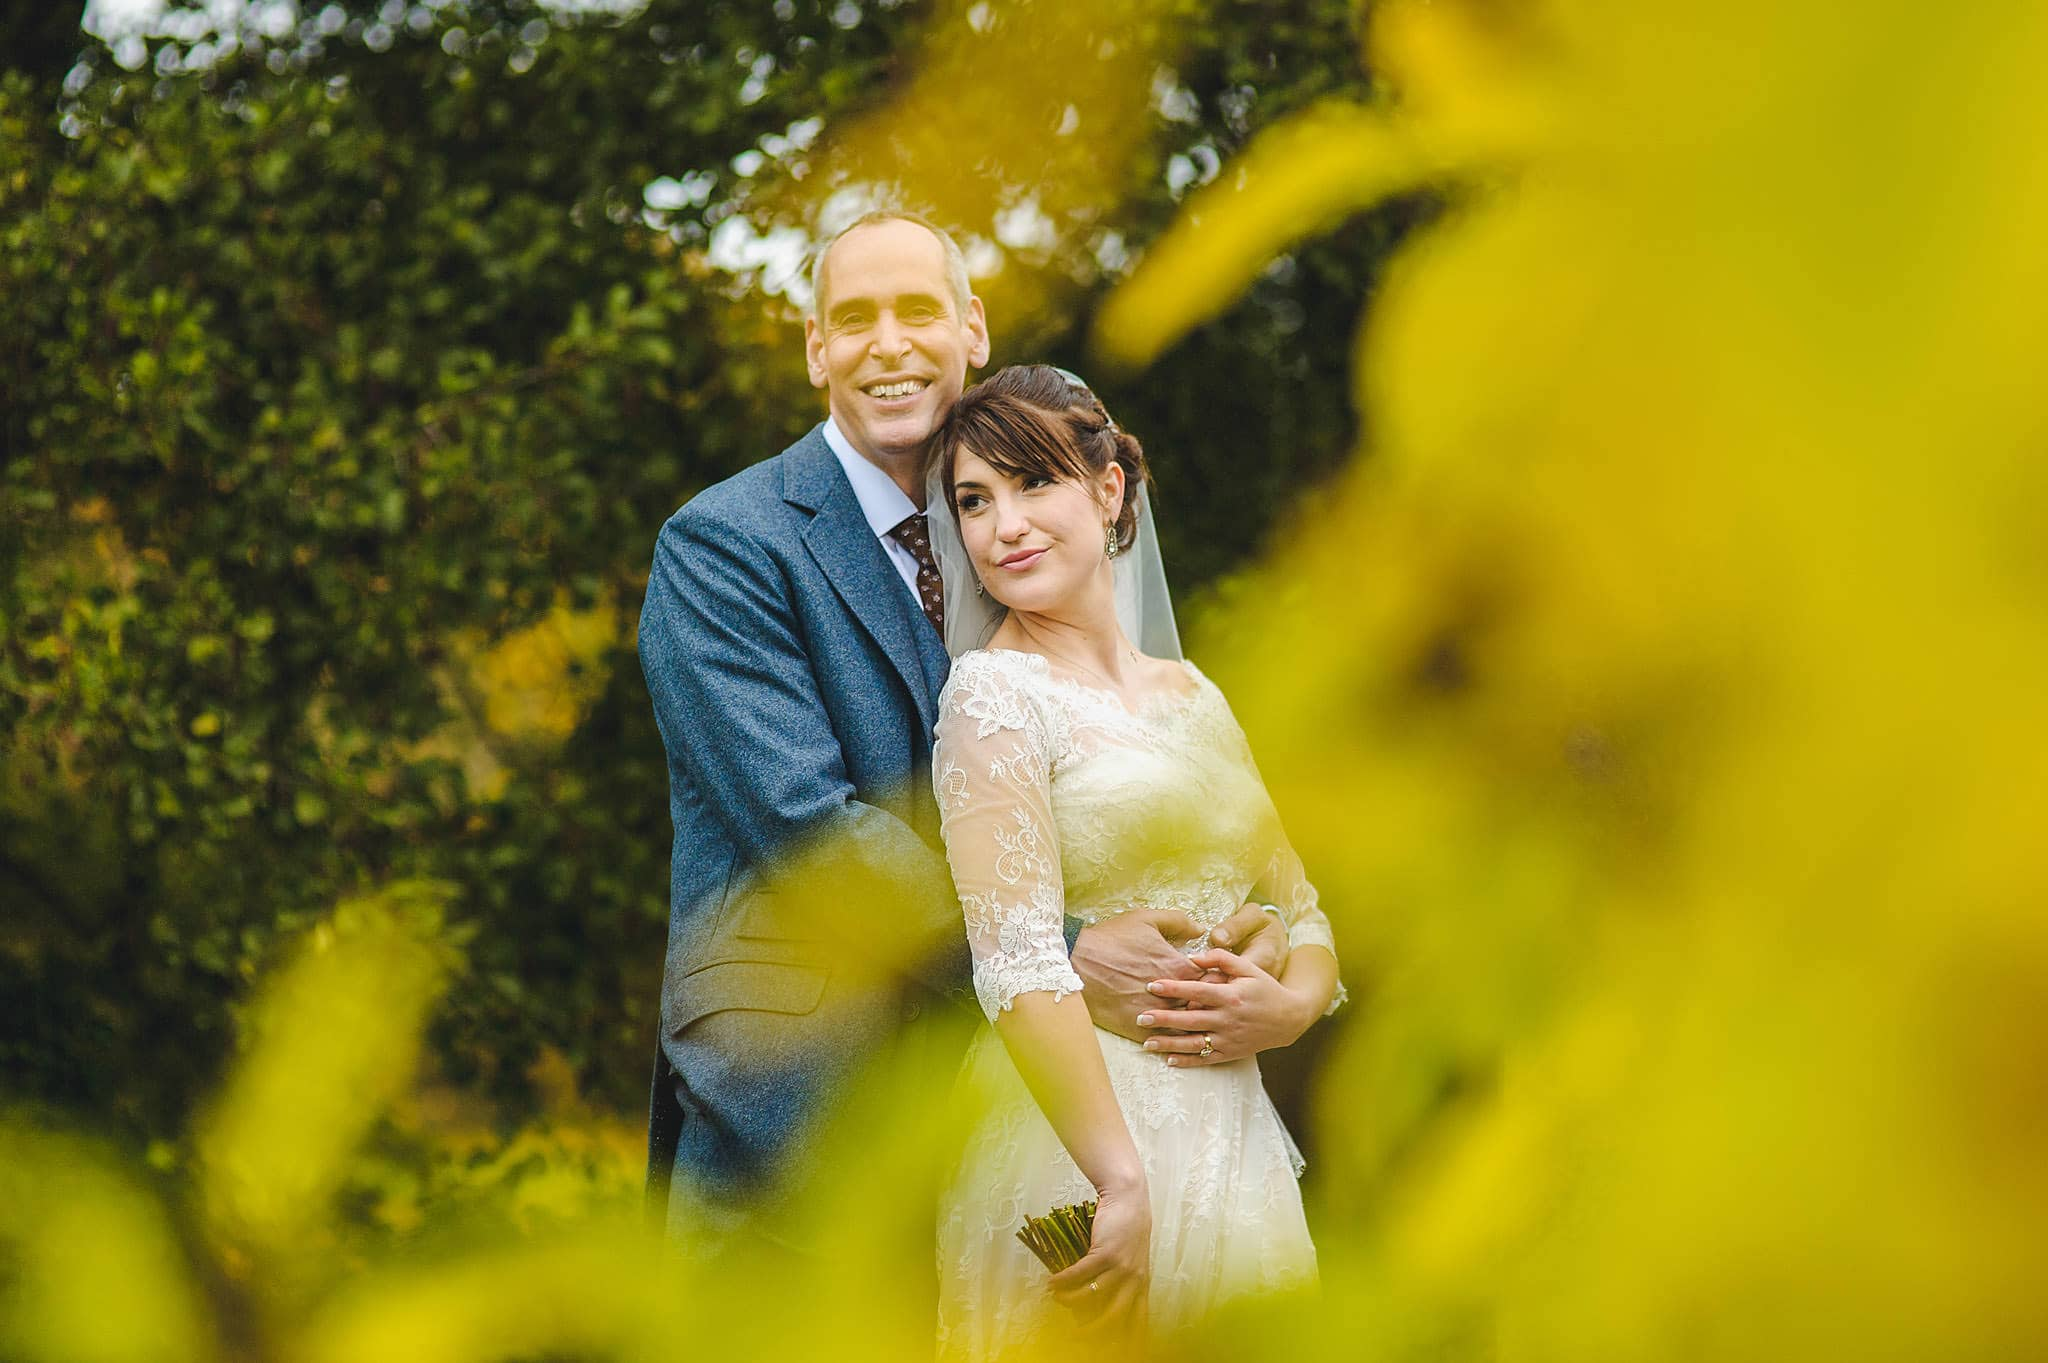 dewsall court wedding photography herefordshire 174 - Dewsall Court wedding photography Herefordshire | Laura + Alex